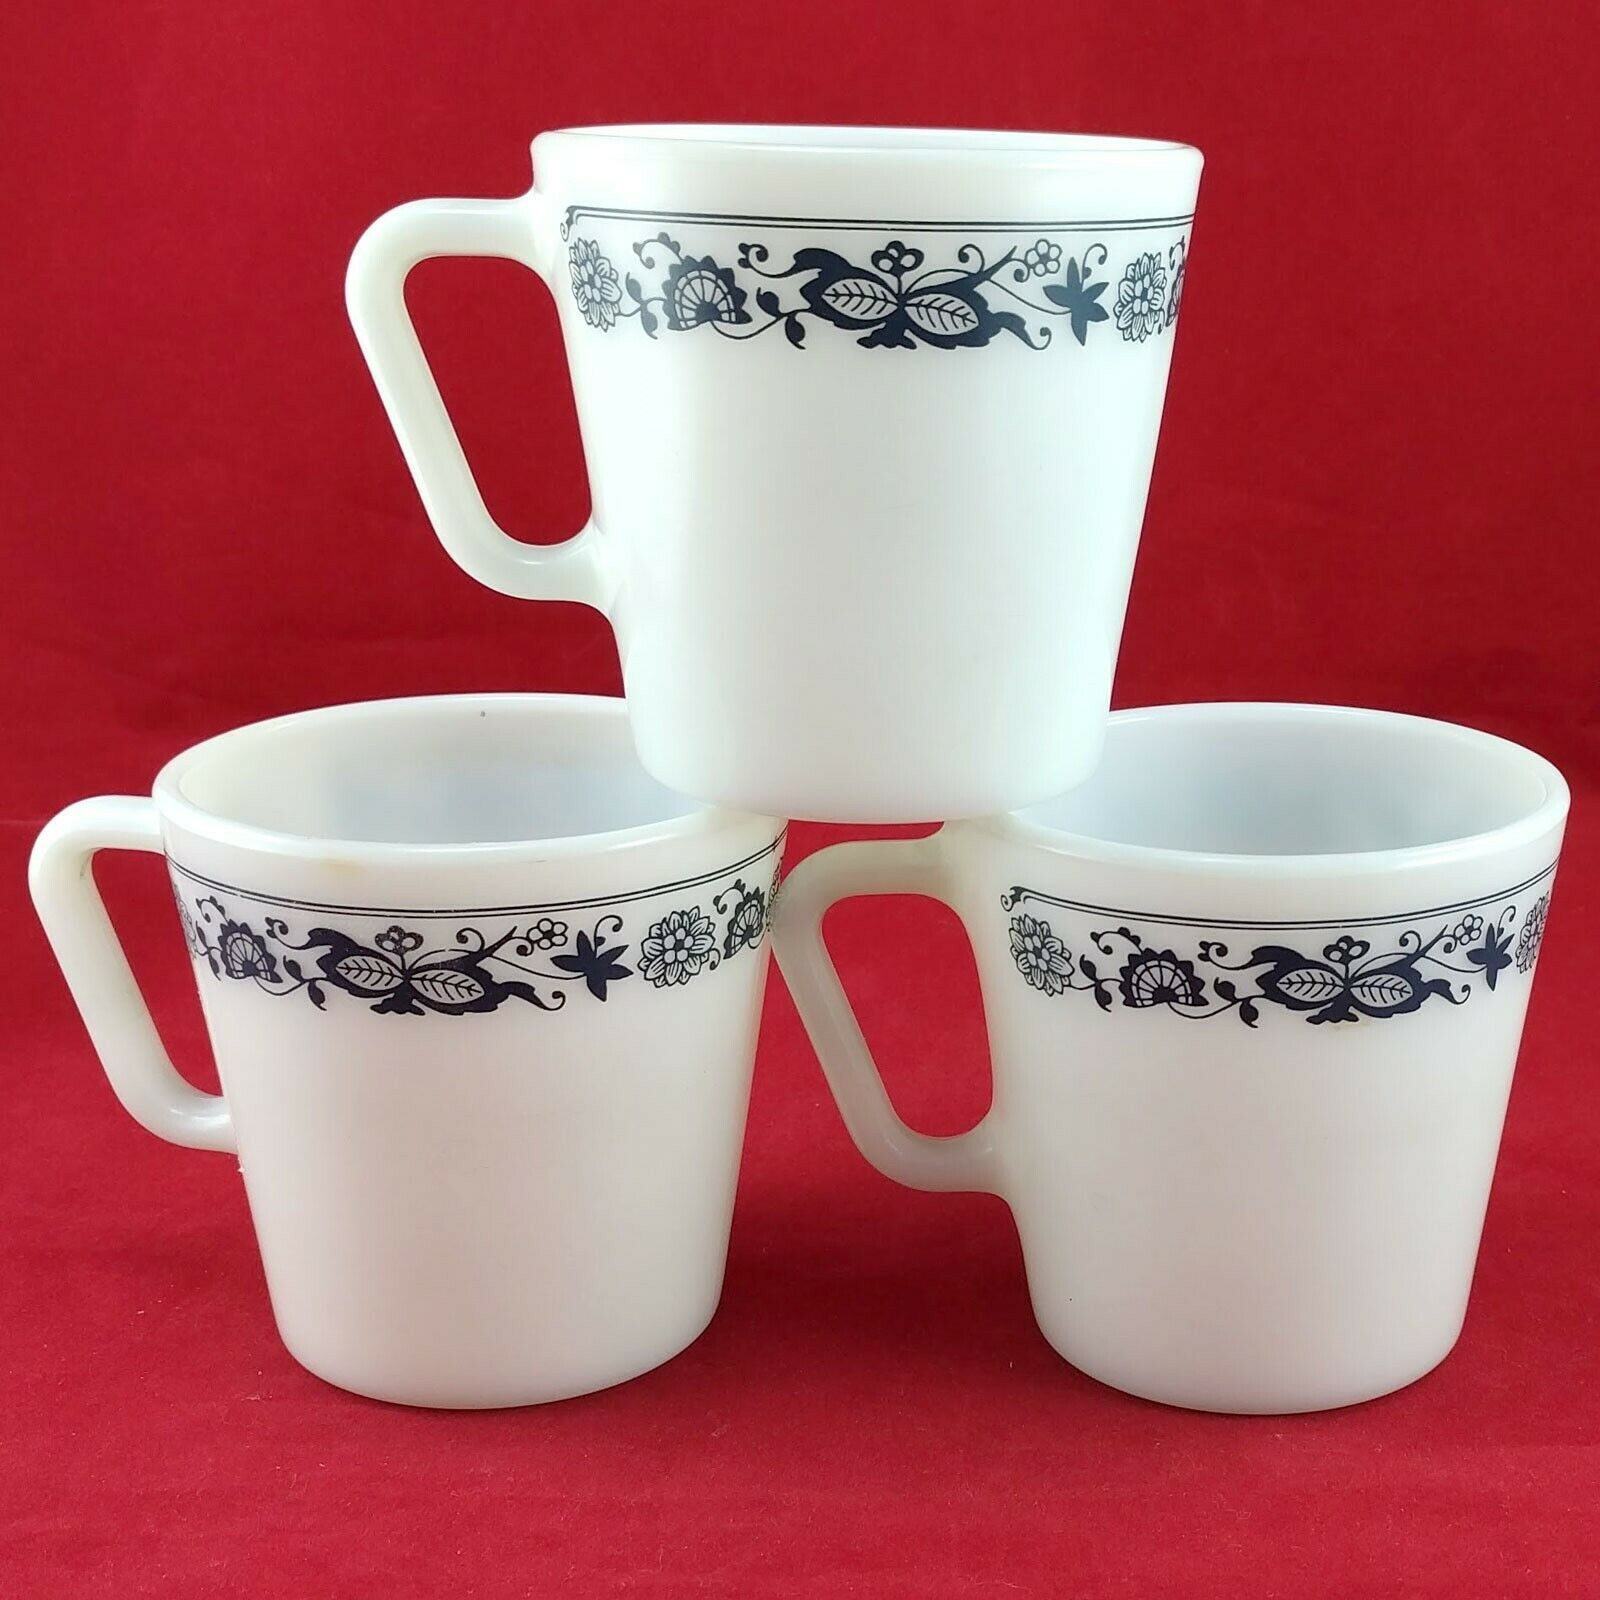 Pyrex 1410 Coffee Cups Vintage Old Town Blue ~ Set of 3 ~ Made in the USA image 3